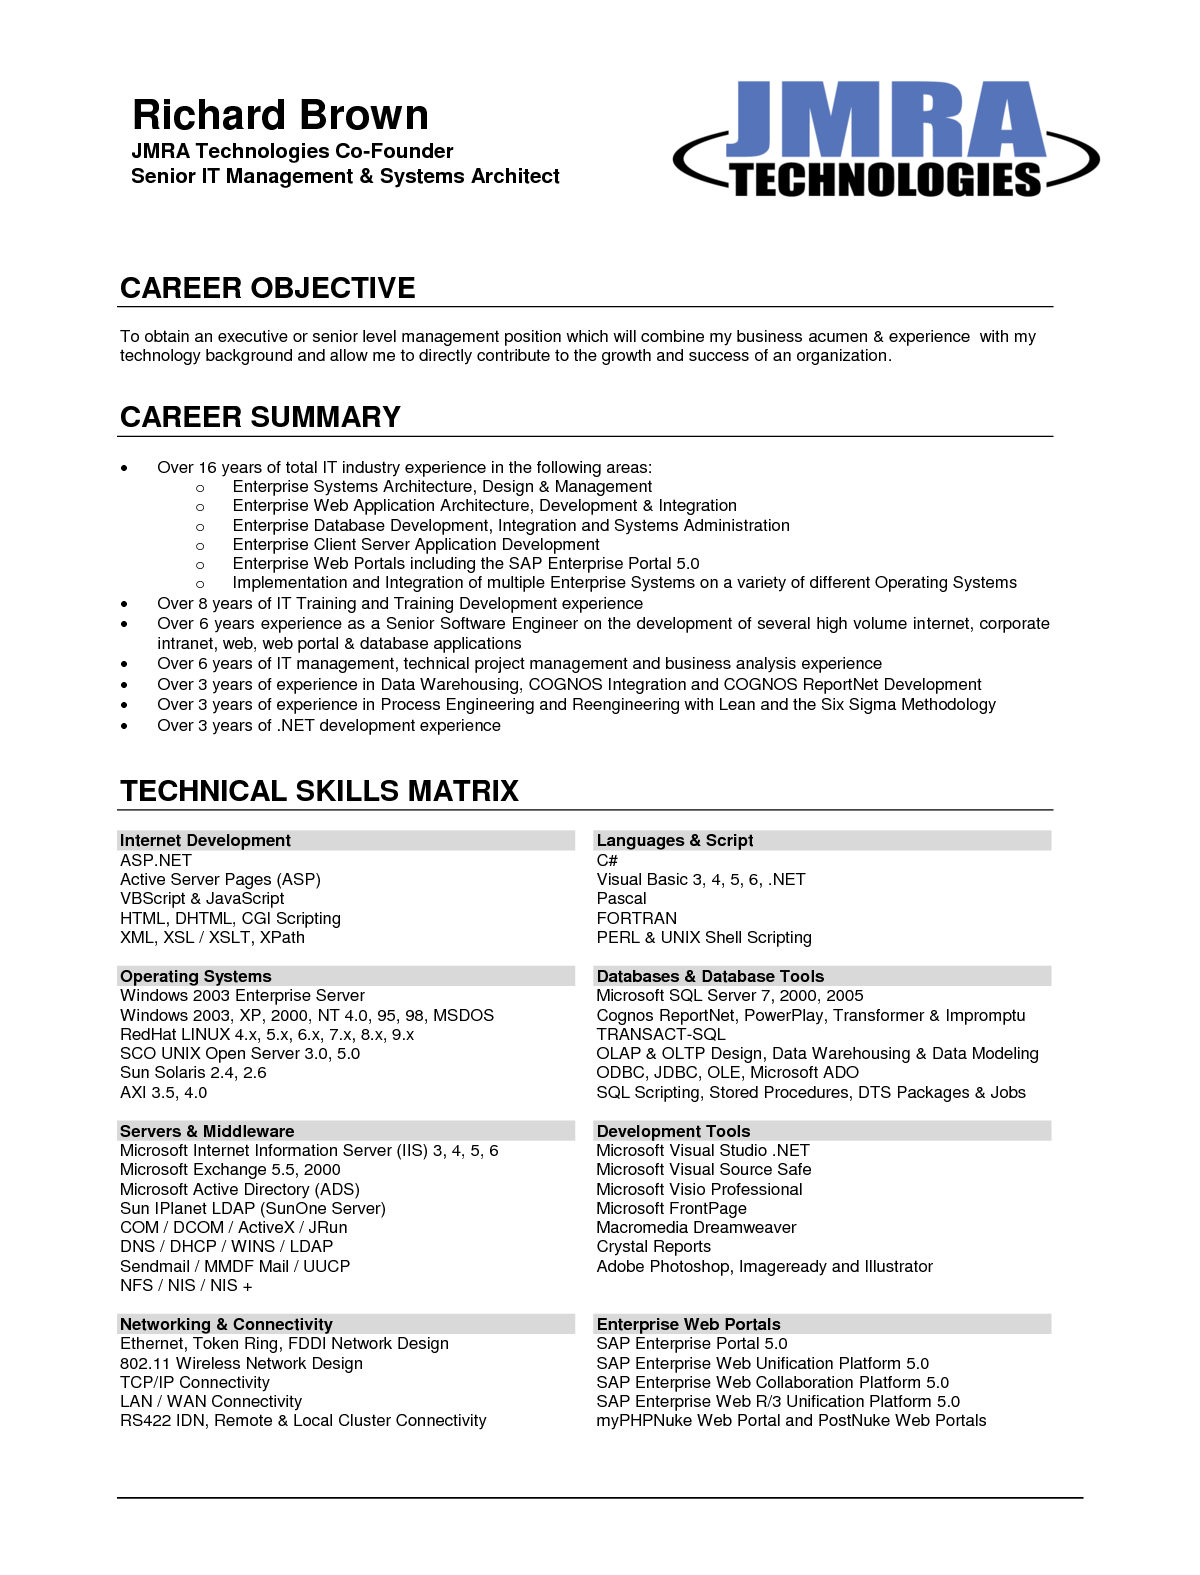 sales resume objective example resume objective statement for b16c3231fcbe538e44830eca91ca2192 sample resume simple objectivehtml career objective resume - Job Objective For Resume